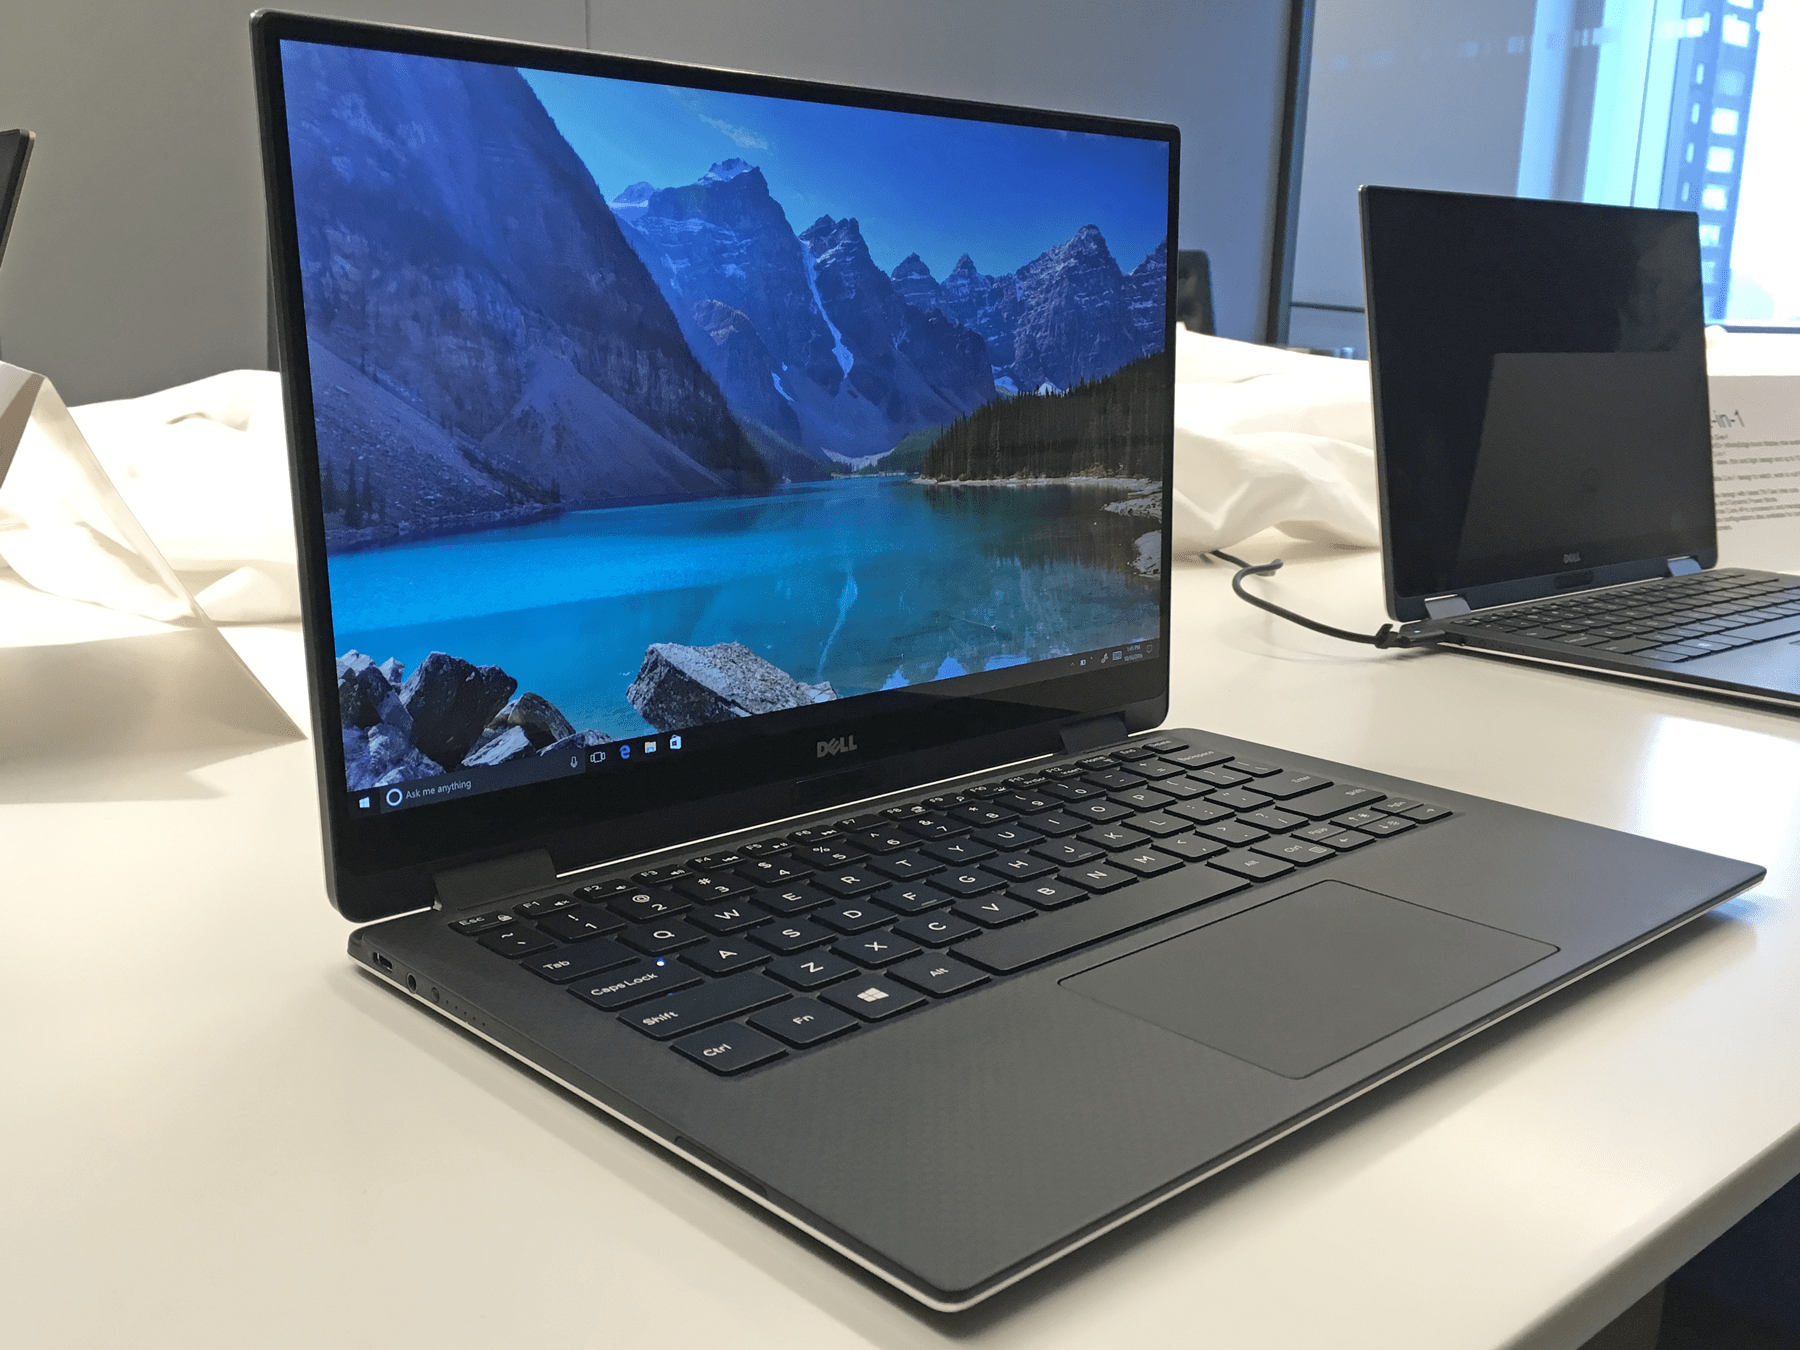 Dell XPS 13 2in1 Windows laptop SPECS FEATURES PHOTOS